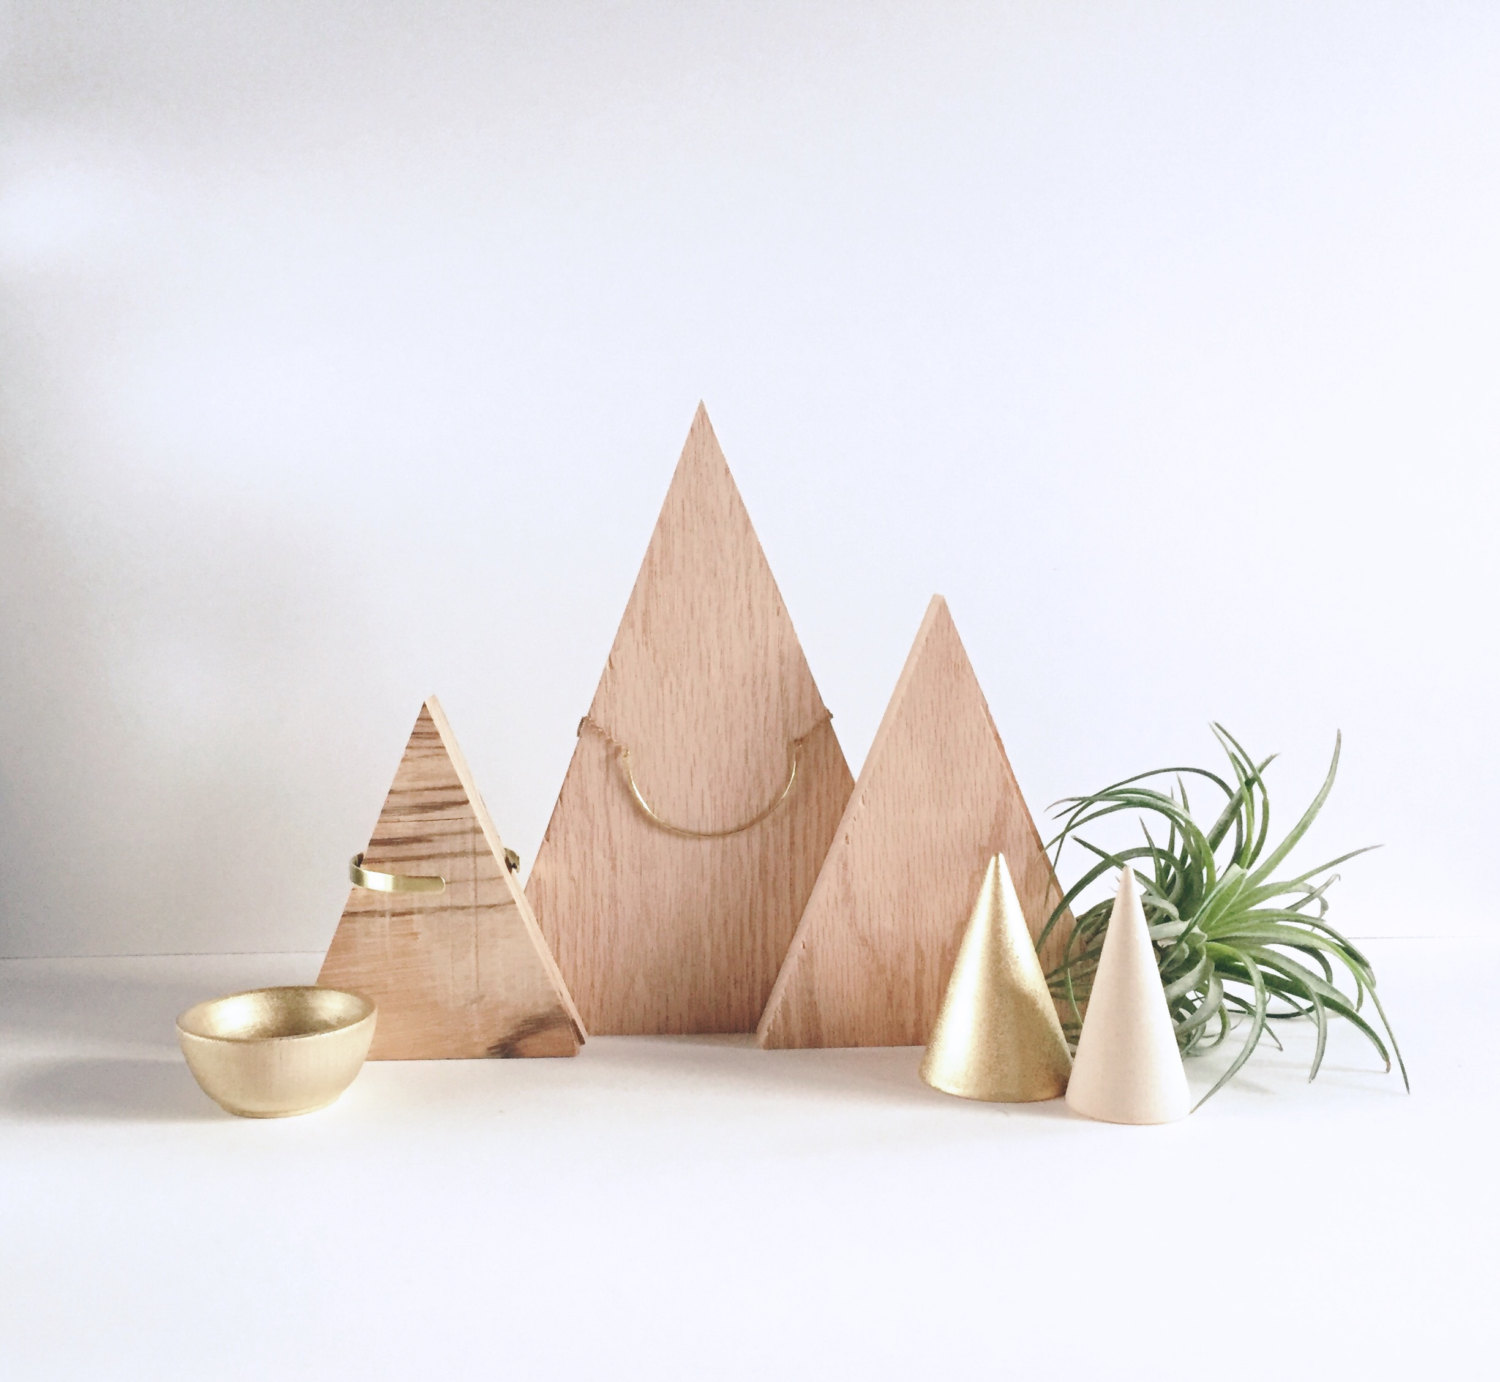 Wood triangle, a minimal and popular design for necklace storage and jewelry display. A creative storage and organization idea.